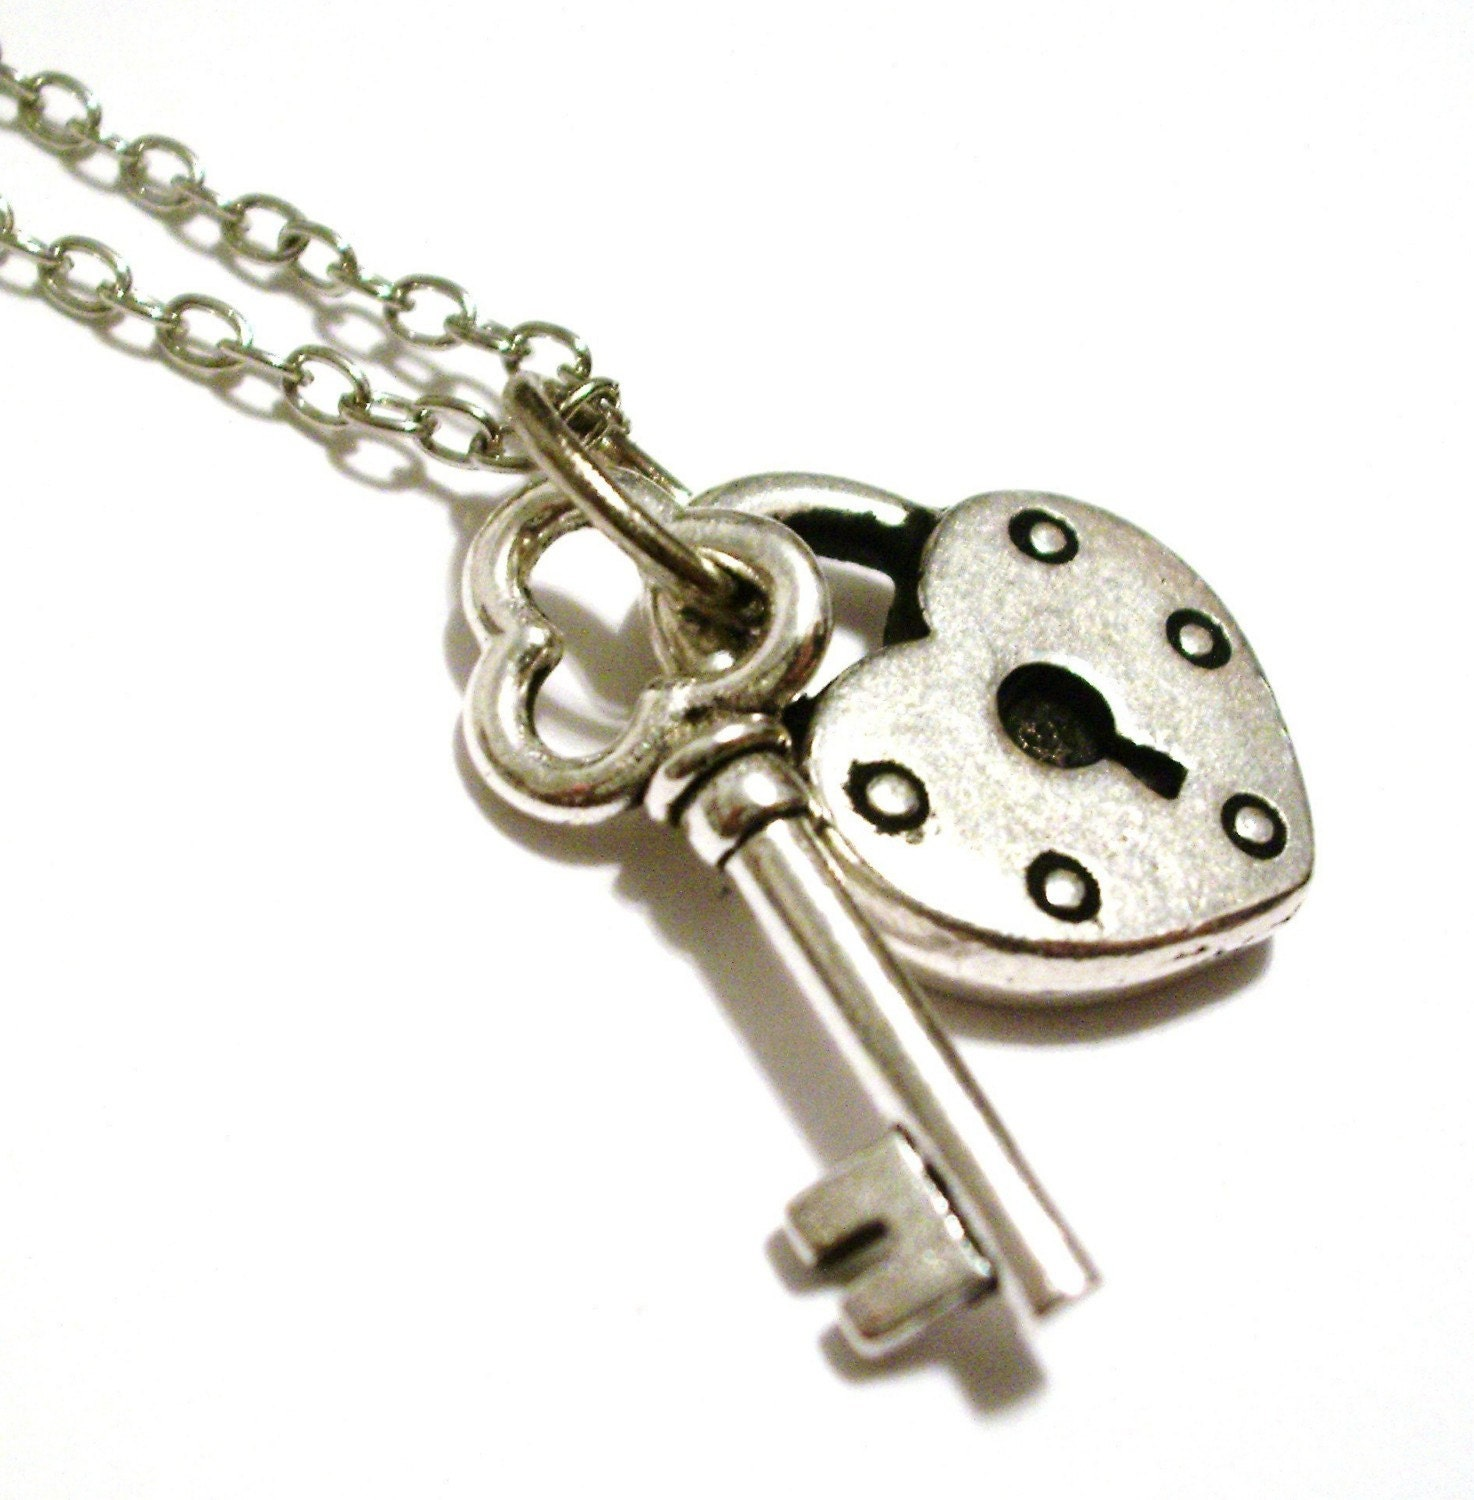 Heart Lock And Key Necklace Free Gift Bag Retro Girls By